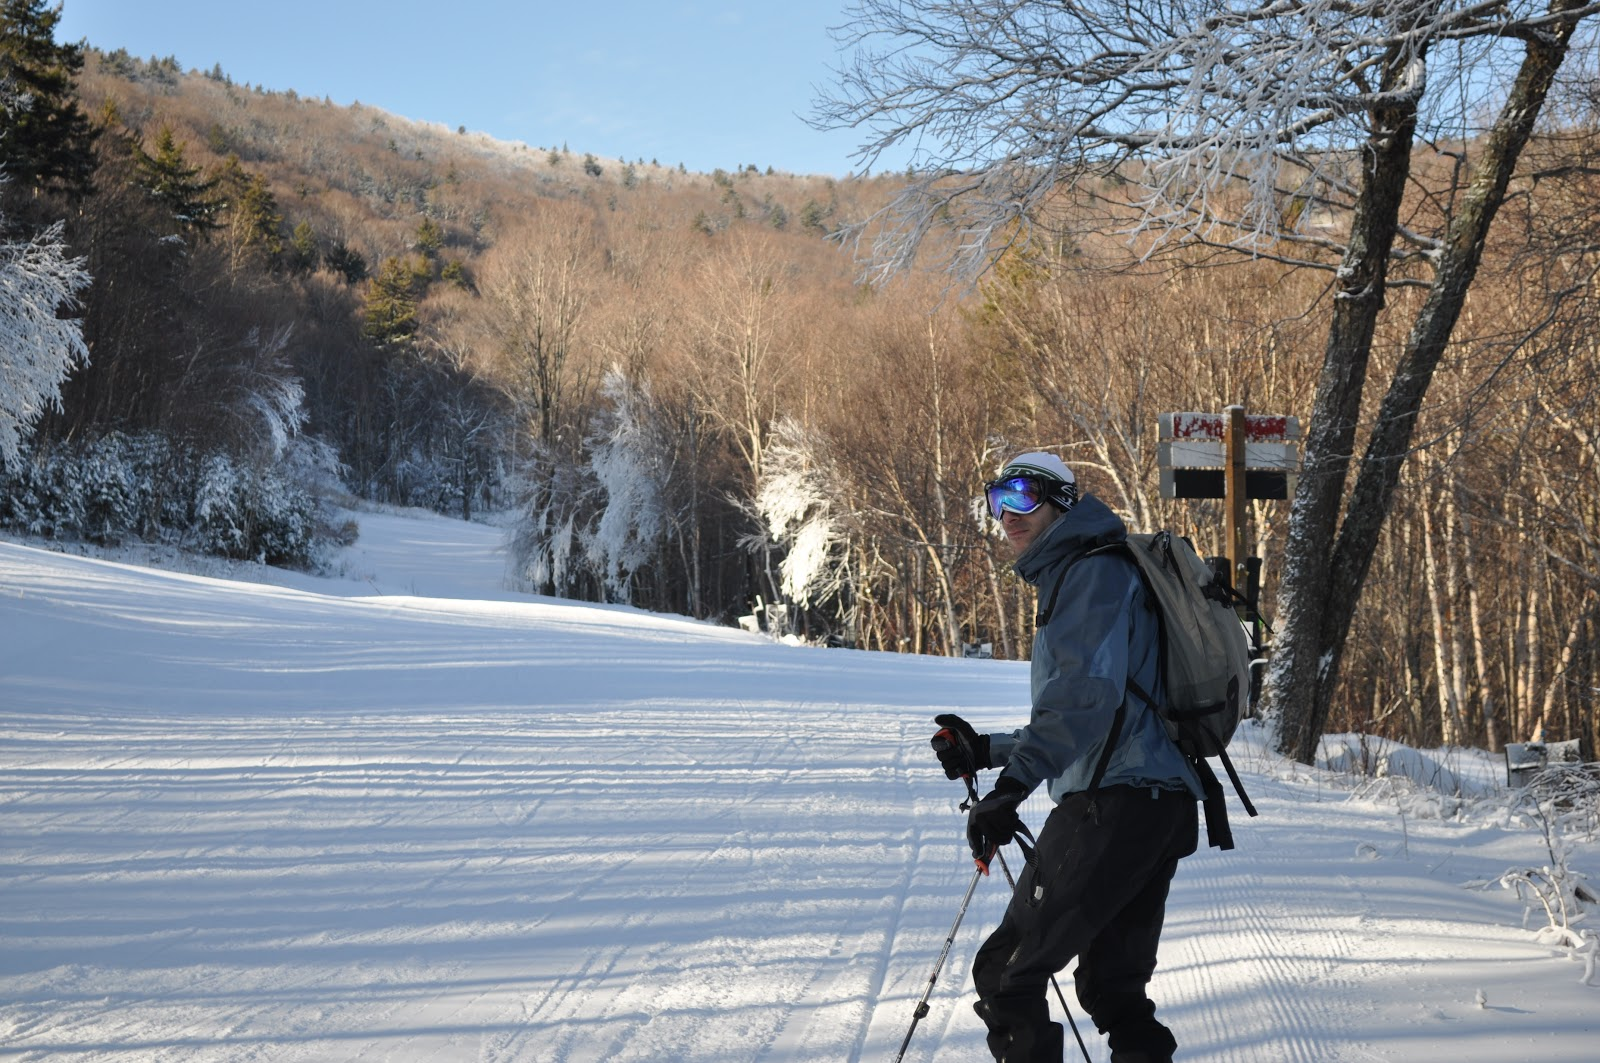 NorEaster Backcountry: Kmart Special: Ski the Skiddies